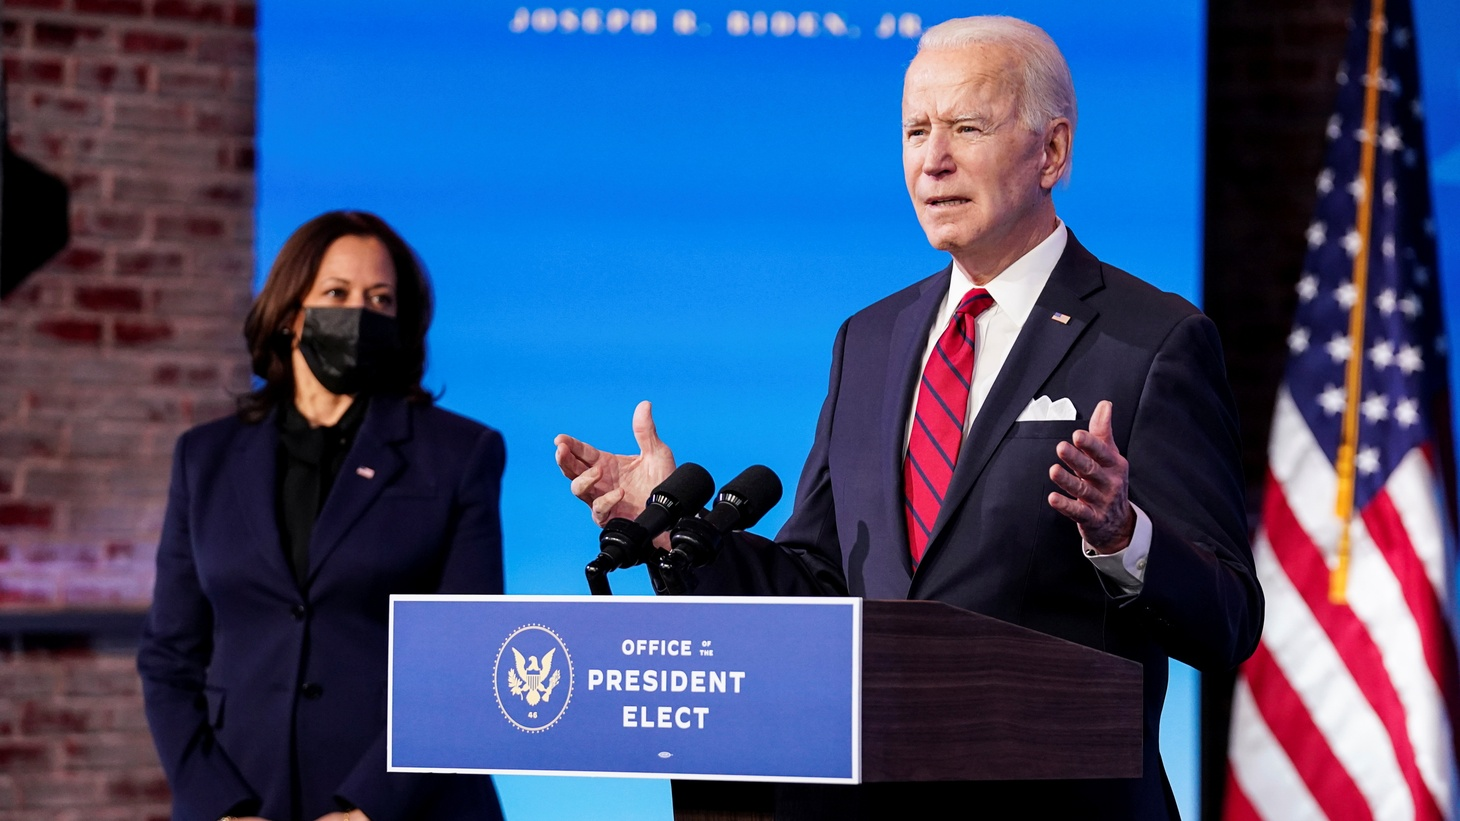 U.S. President-elect Joe Biden speaks about his plan to administer coronavirus disease (COVID-19) vaccines to the U.S. population as Vice President-elect Kamala Harris listens during a news conference at Biden's transition headquarters in Wilmington, Delaware, U.S., January 15, 2021.